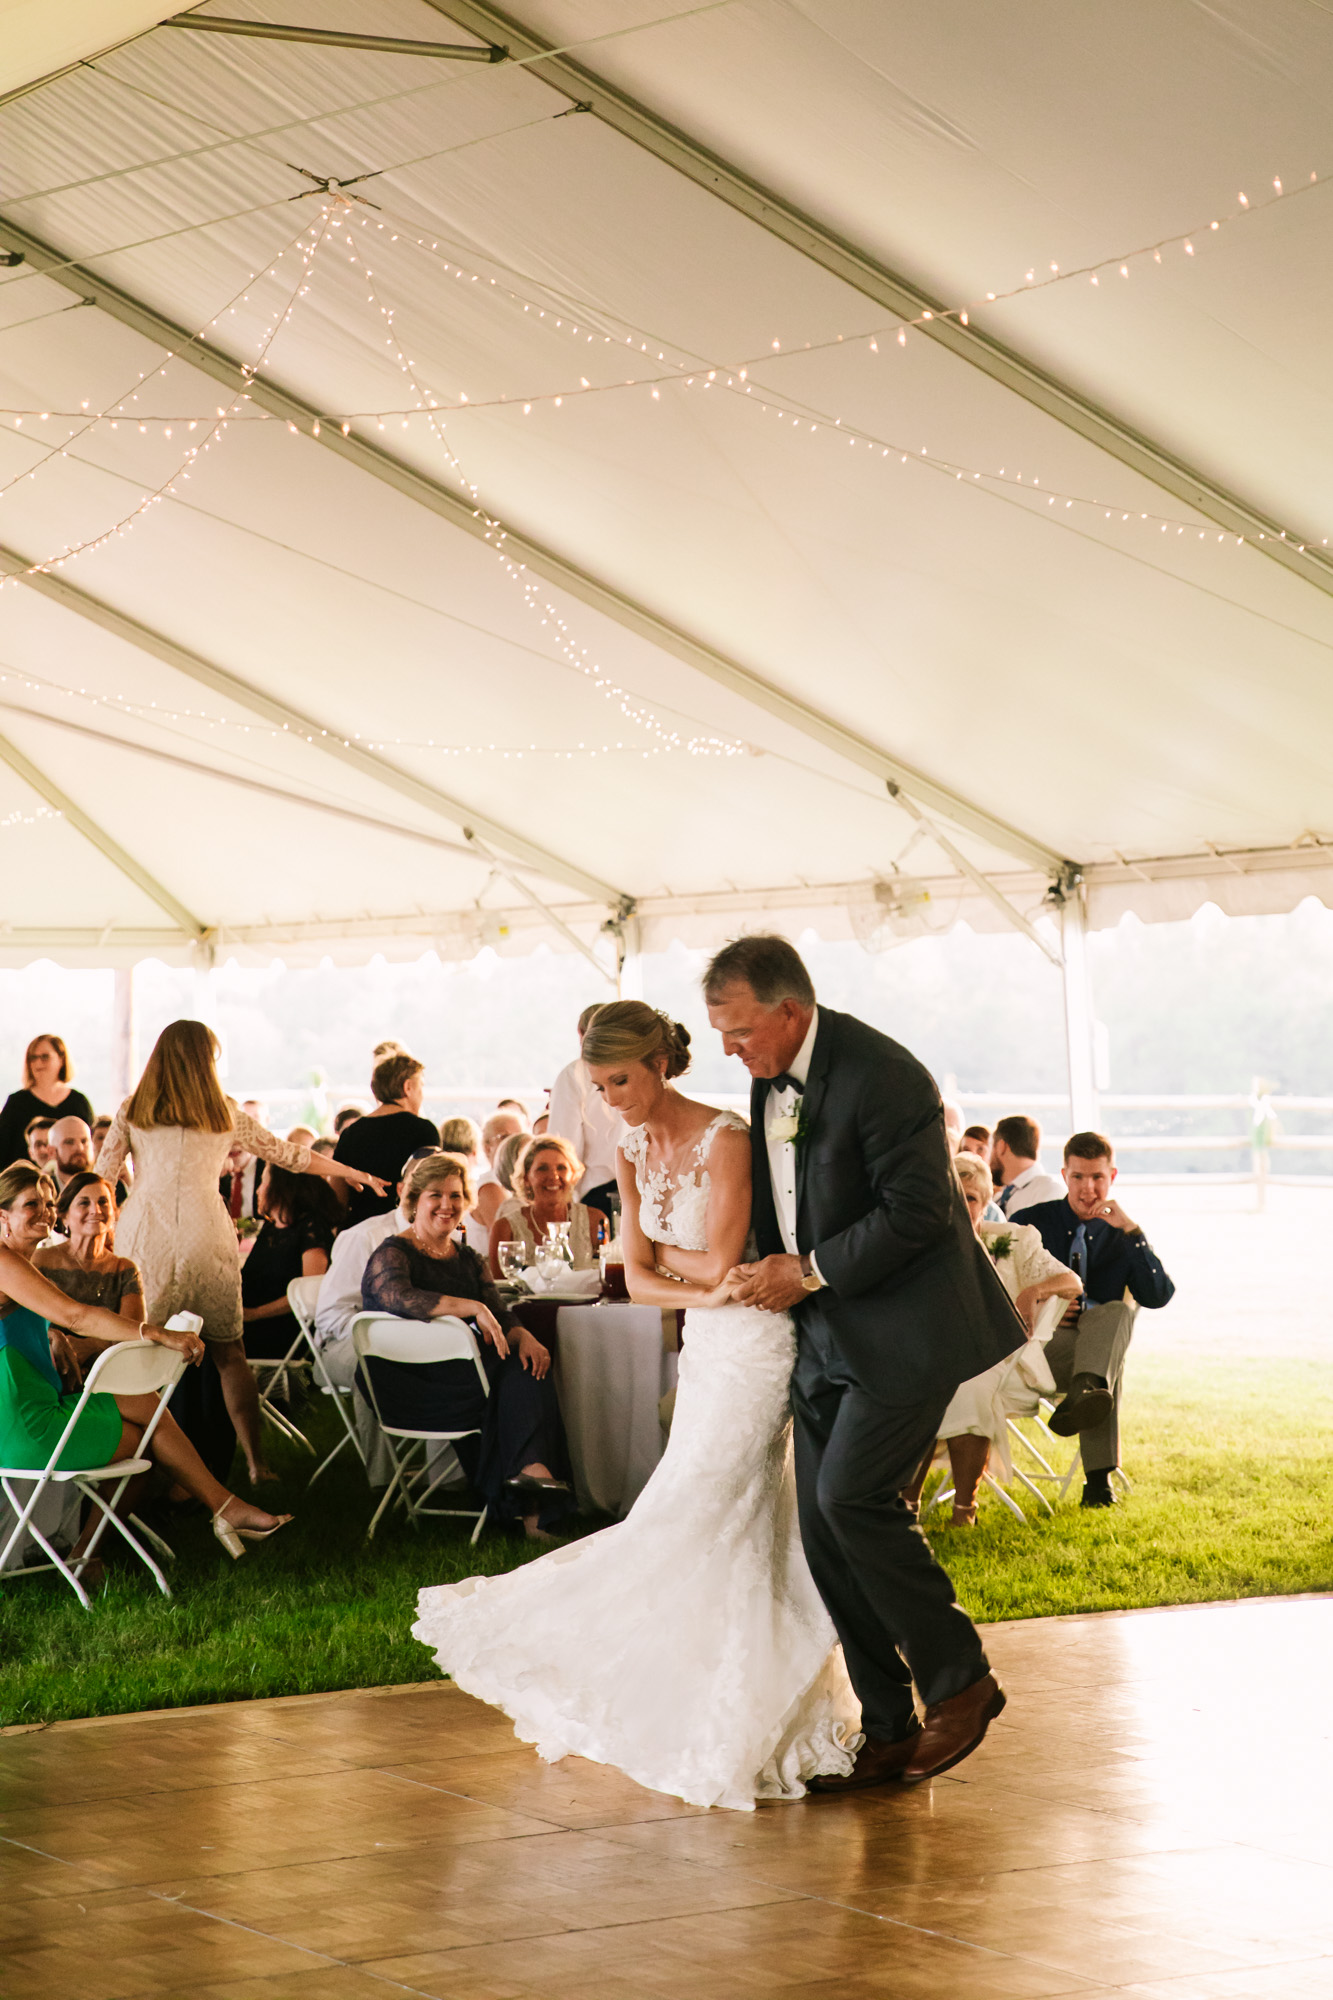 Waynesville, NC Wedding Photography | Father Daughter Dancing in Lockstep